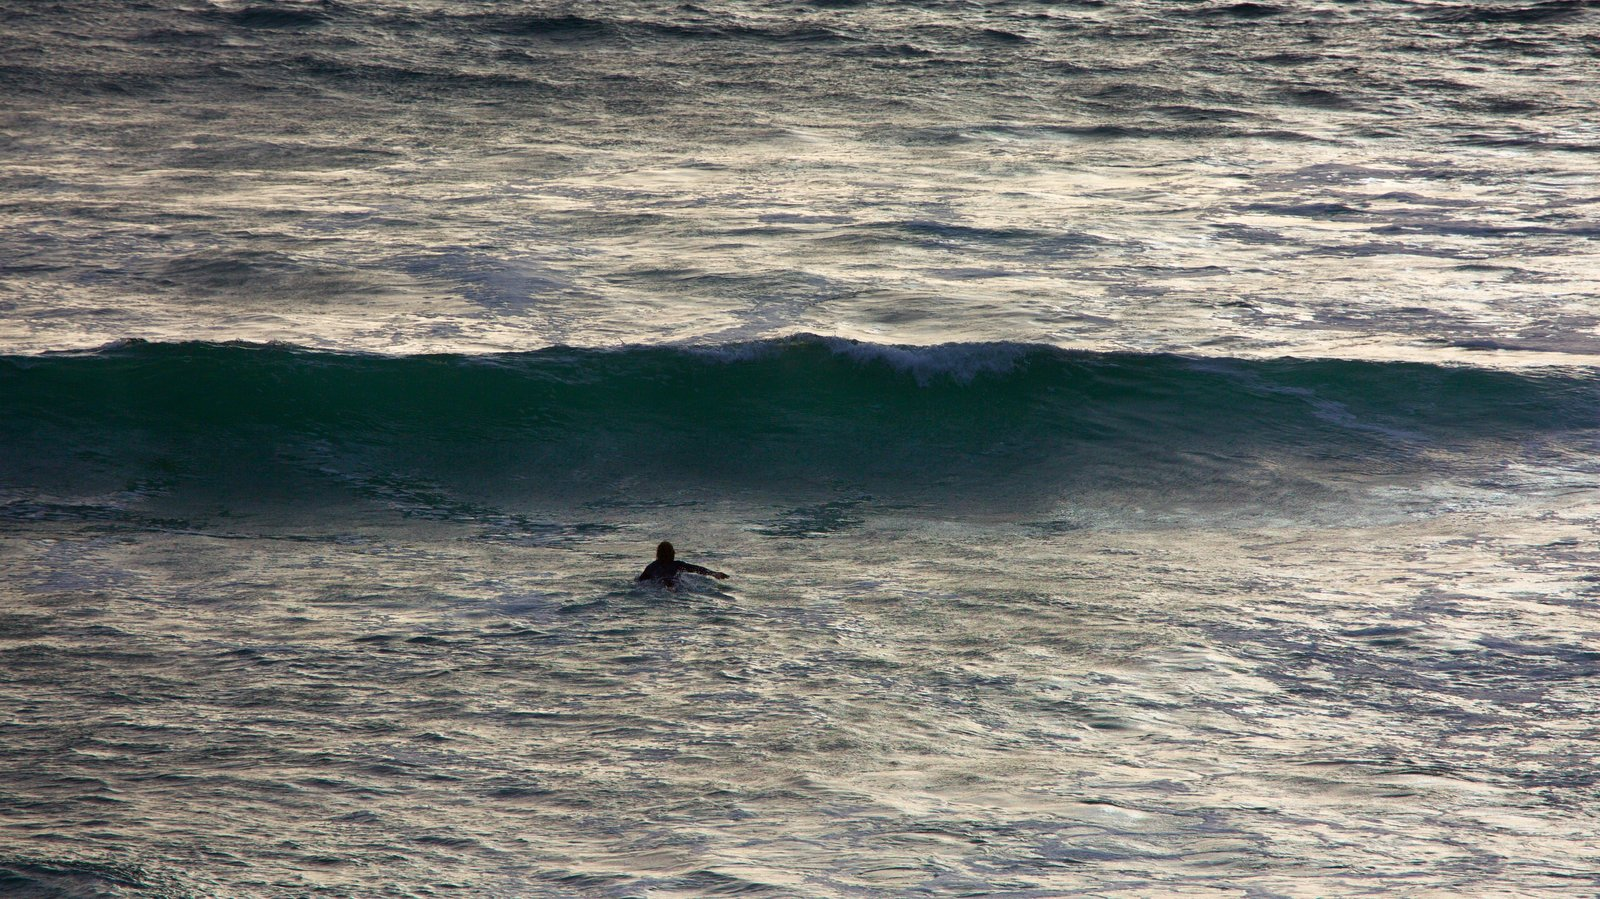 Sonoma Valley showing surf, general coastal views and surfing